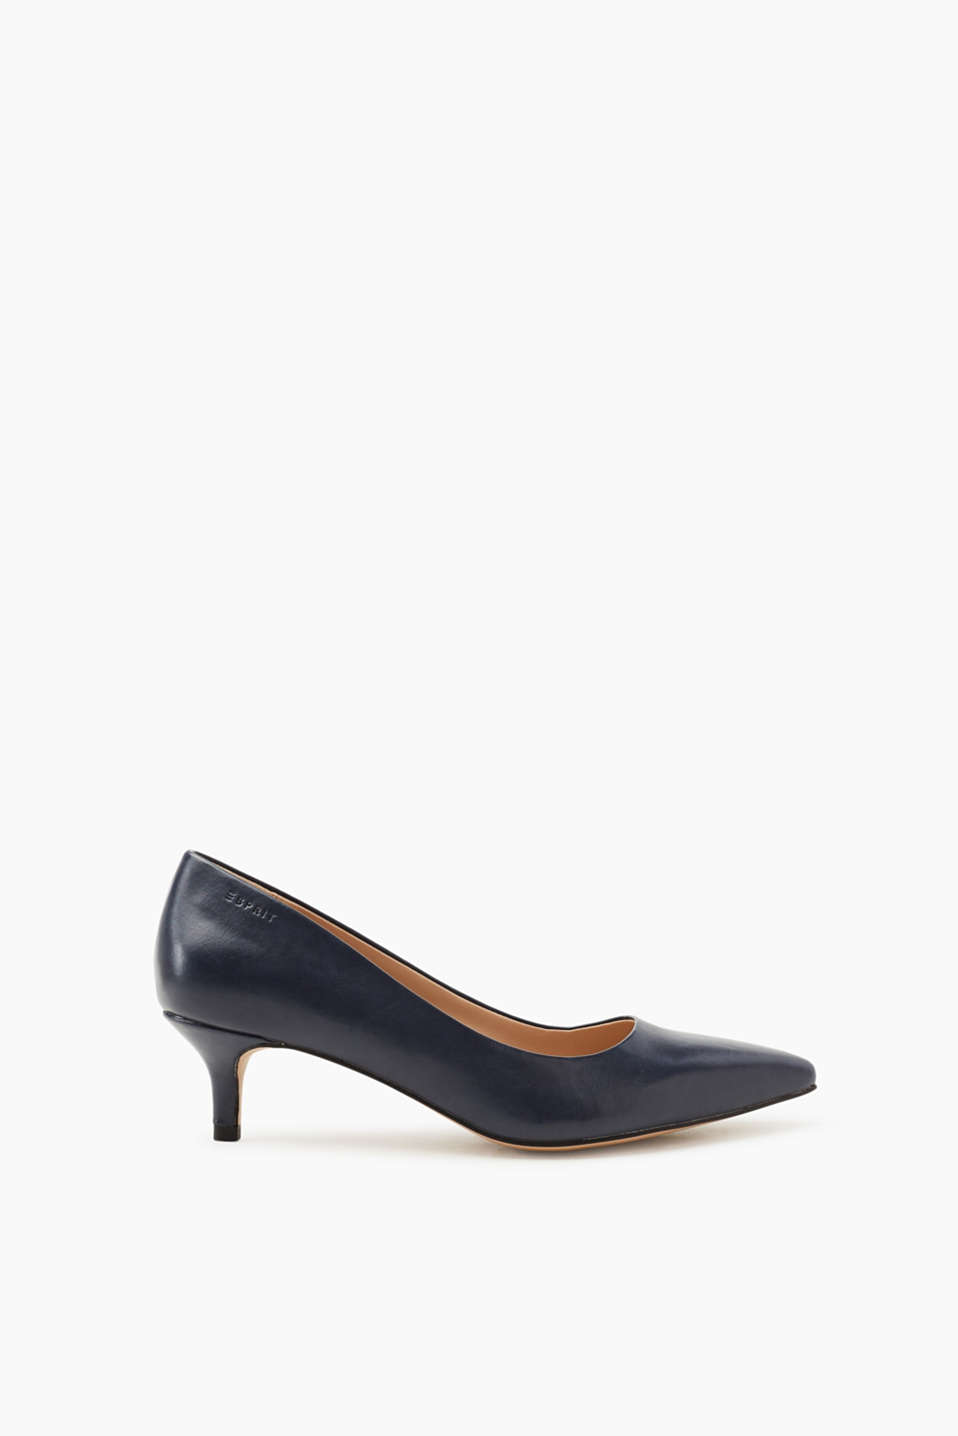 Esprit Slingback-Pumps in glatter Leder-Optik für Damen, Größe 41, Navy